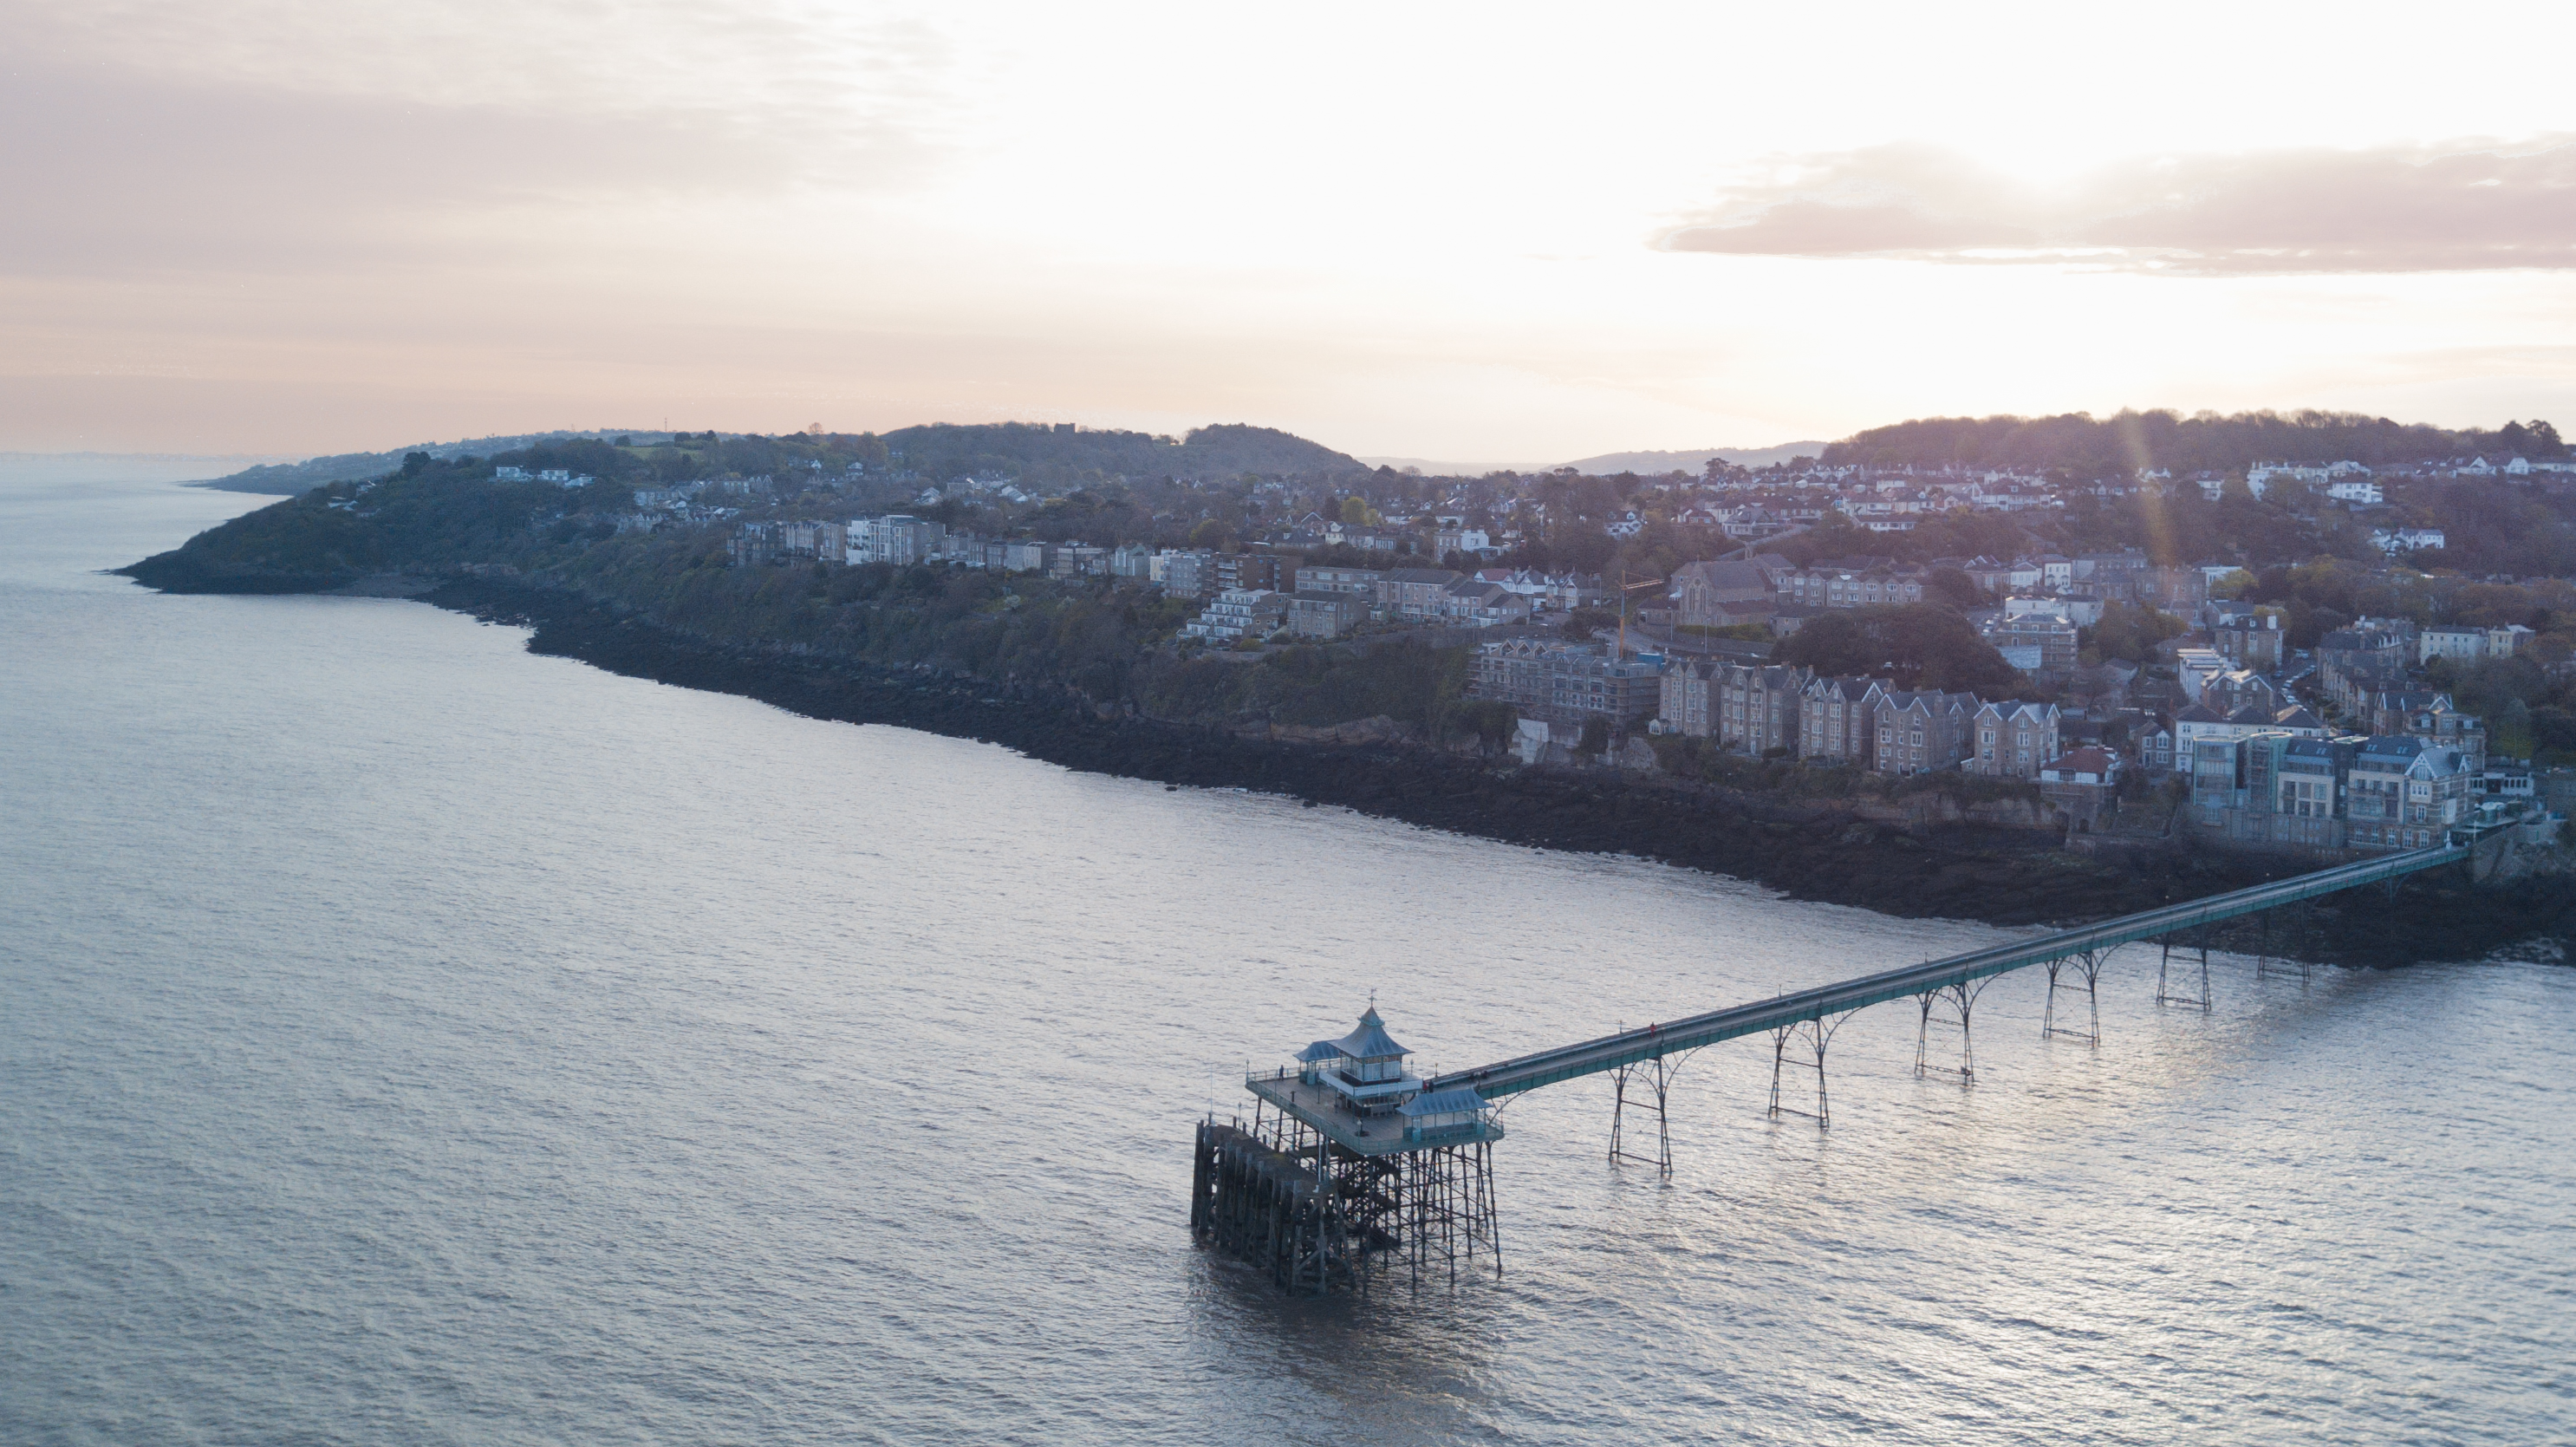 Sunrise over Clevedon and the pier